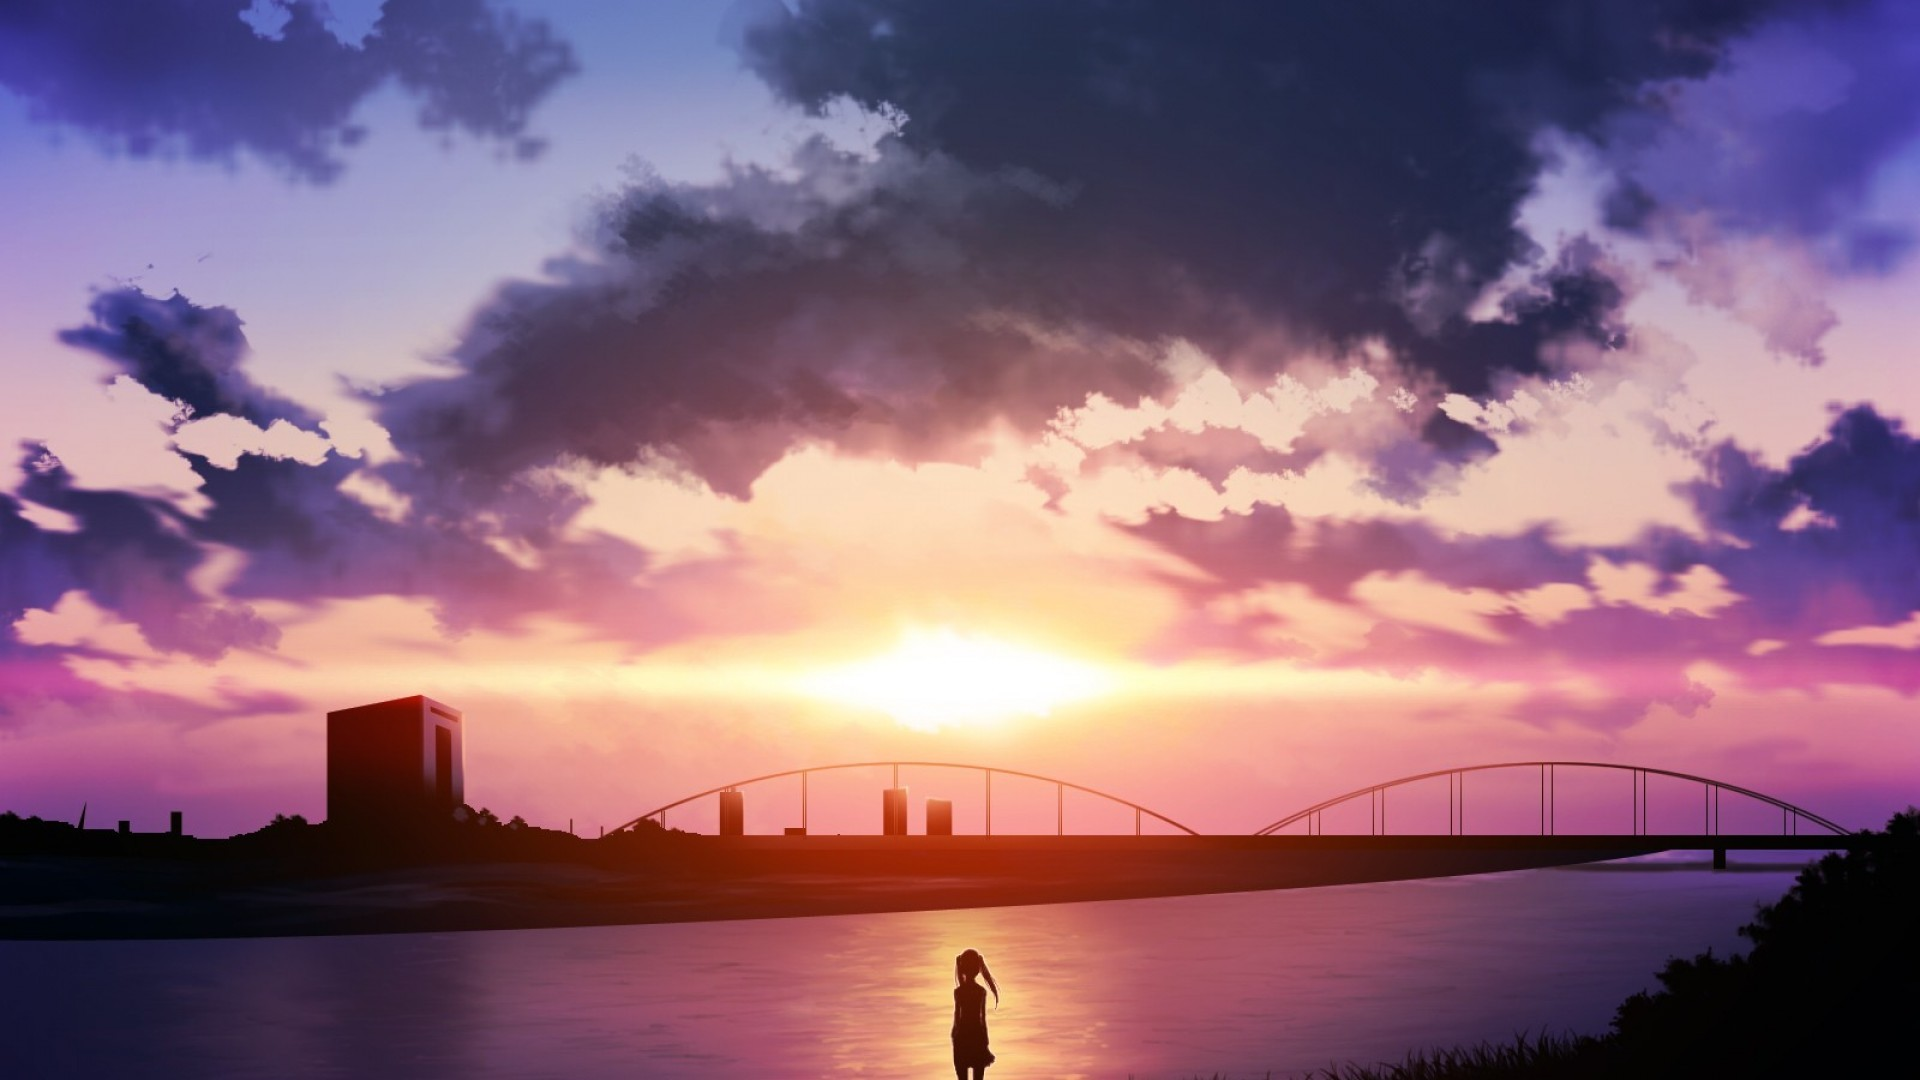 Image – Sunset-Anime-Scenery-Wallpaper-HD.jpg | Brothers Conflict Wiki |  FANDOM powered by Wikia